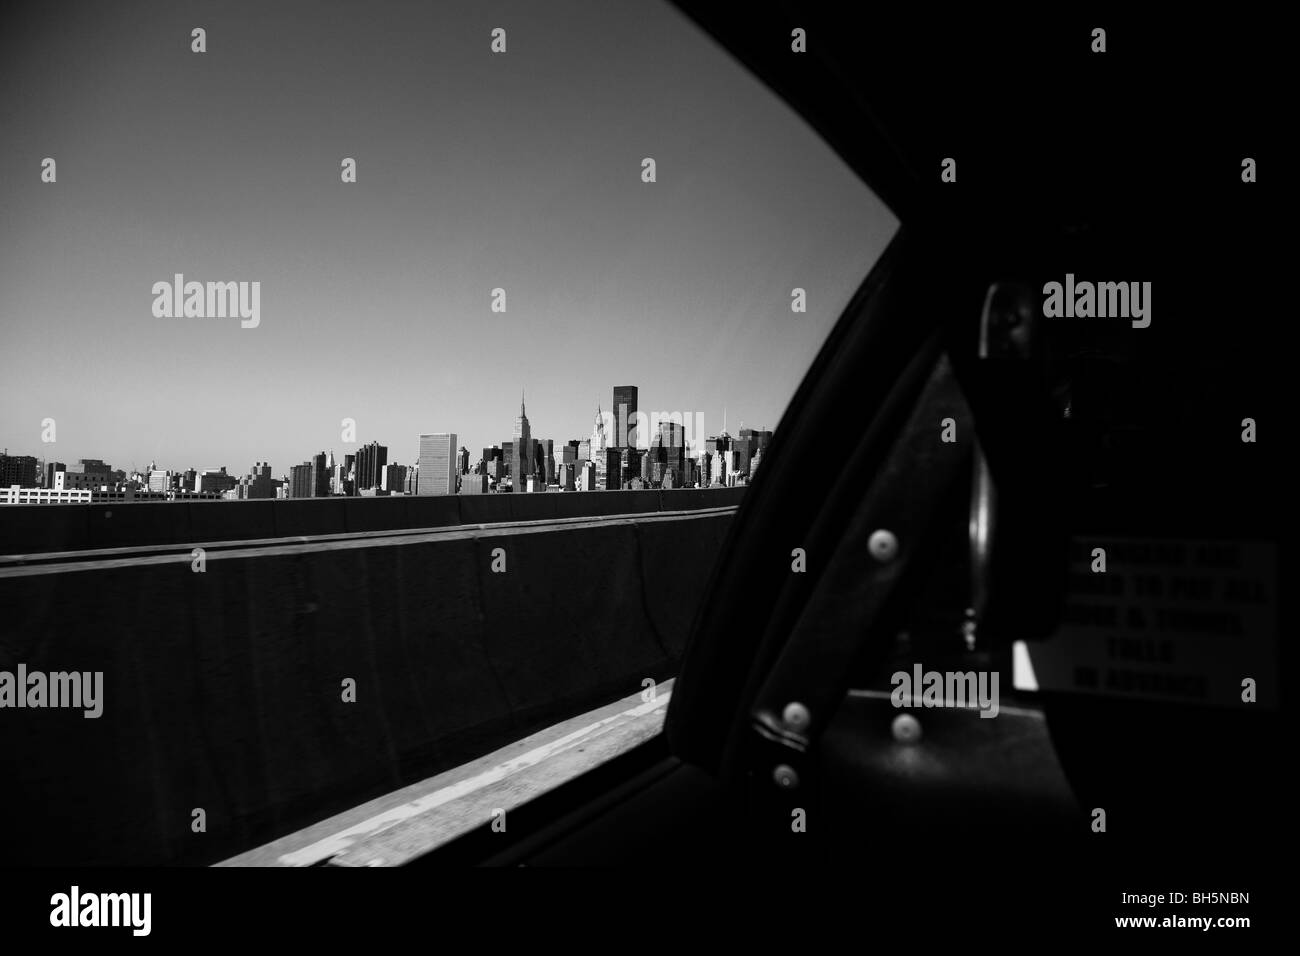 The Manhattan skyline from inside a NYC taxi cab approaching Queensboro Bridge, New York City, New York USA - Stock Image